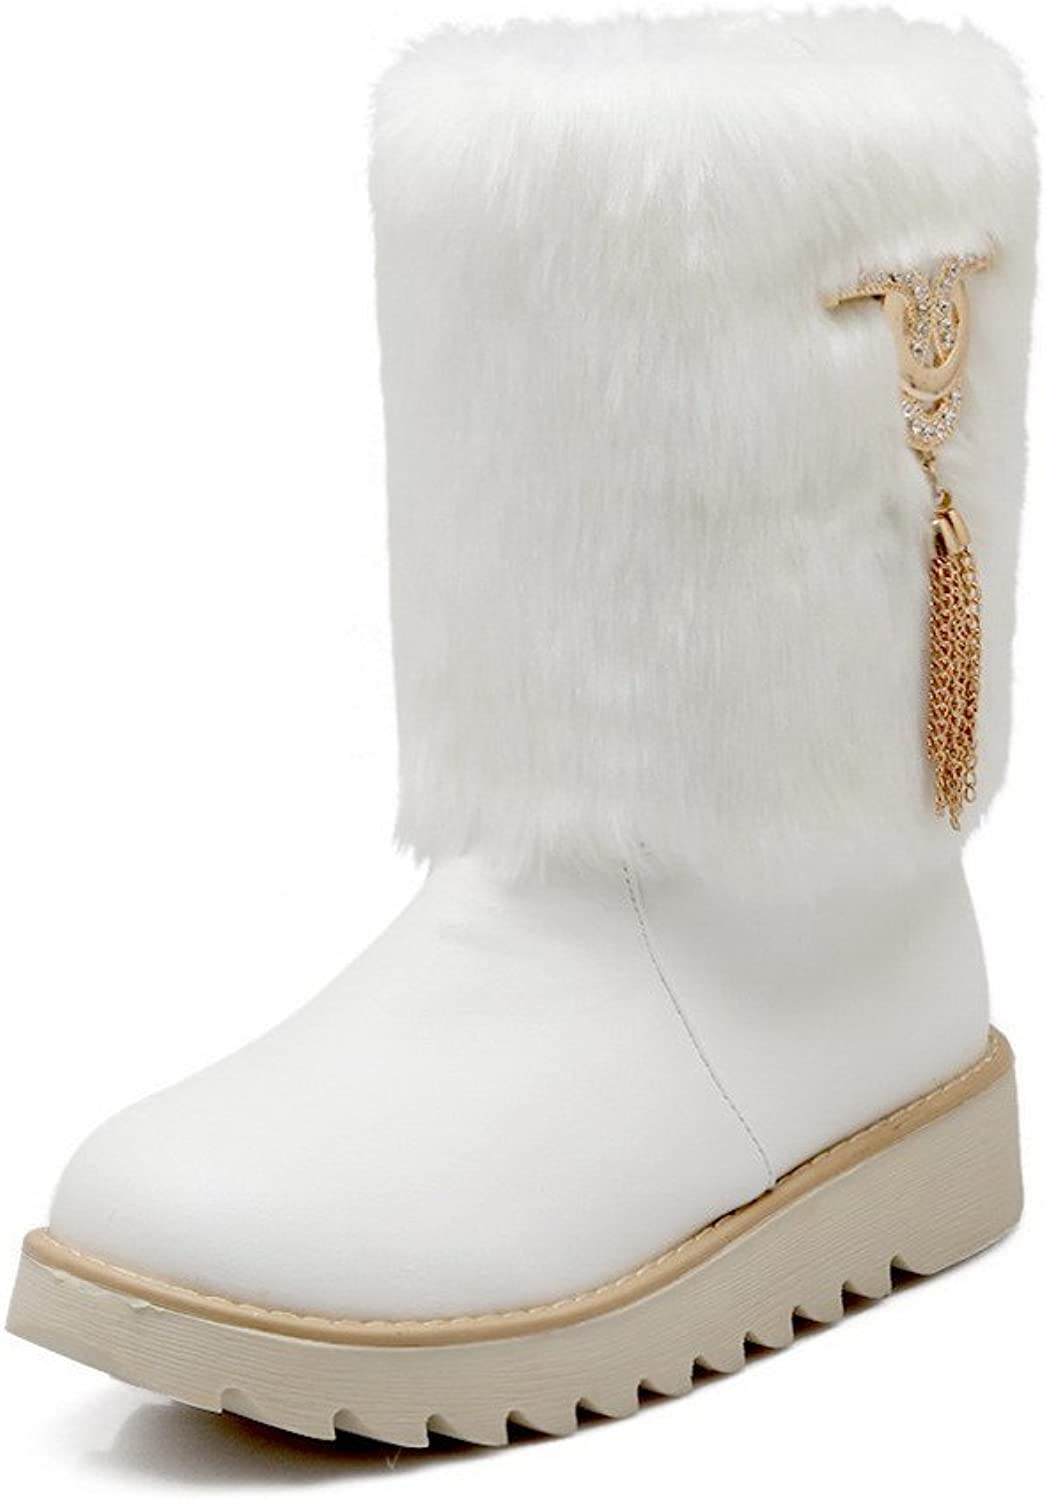 WeenFashion Women's PU Low-Heels Round-Toe Boots with Glass Diamond and Platform